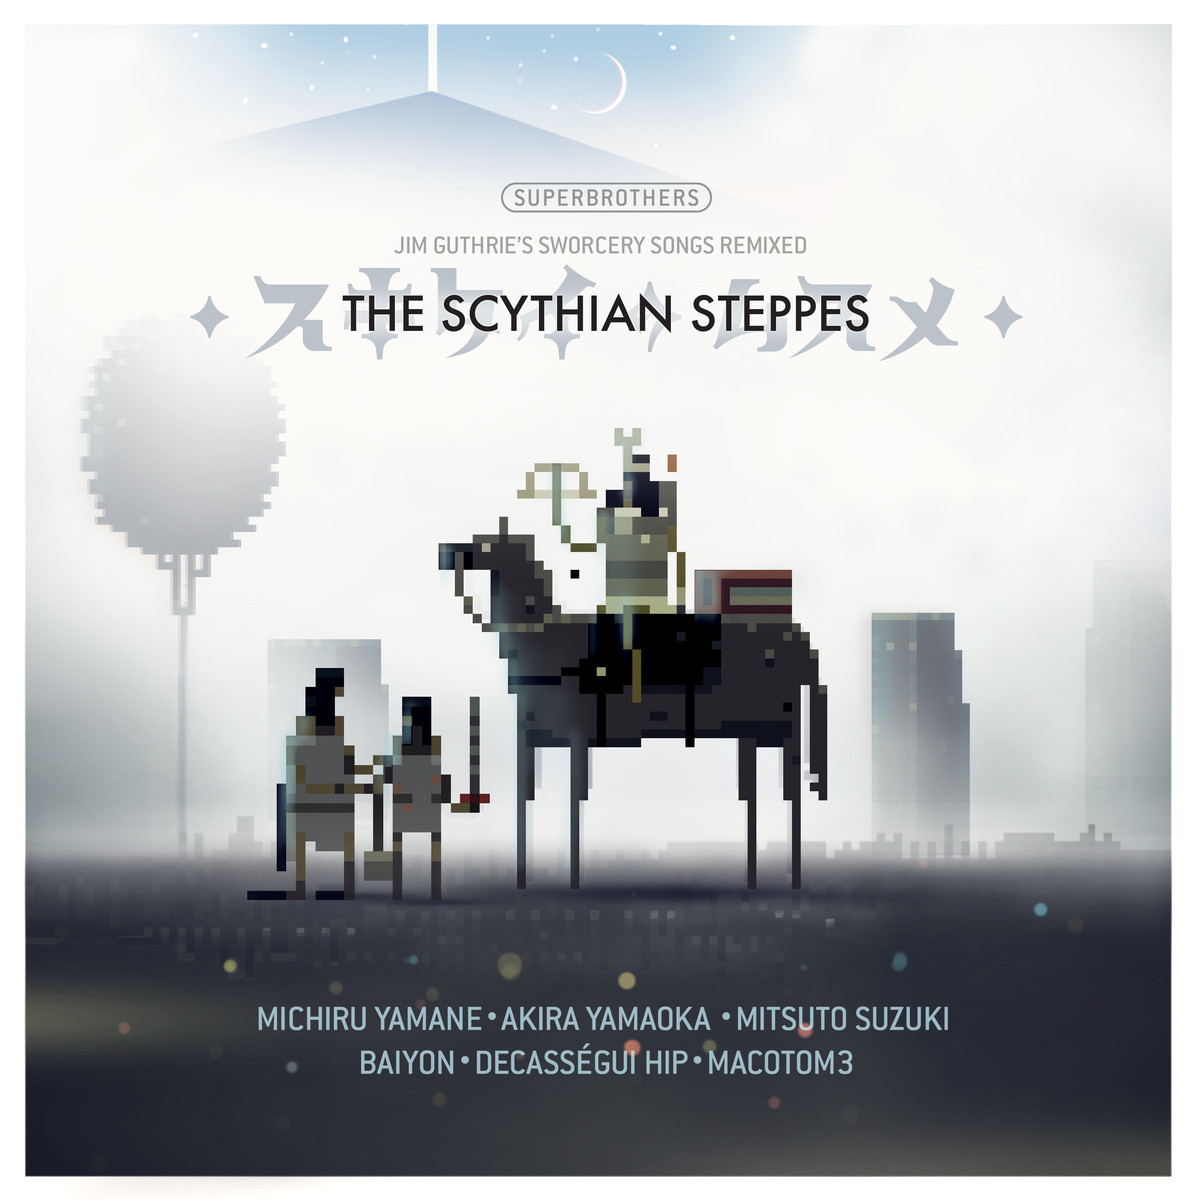 The Scythian Steppes: Seven #Sworcery Songs Localized for Japan